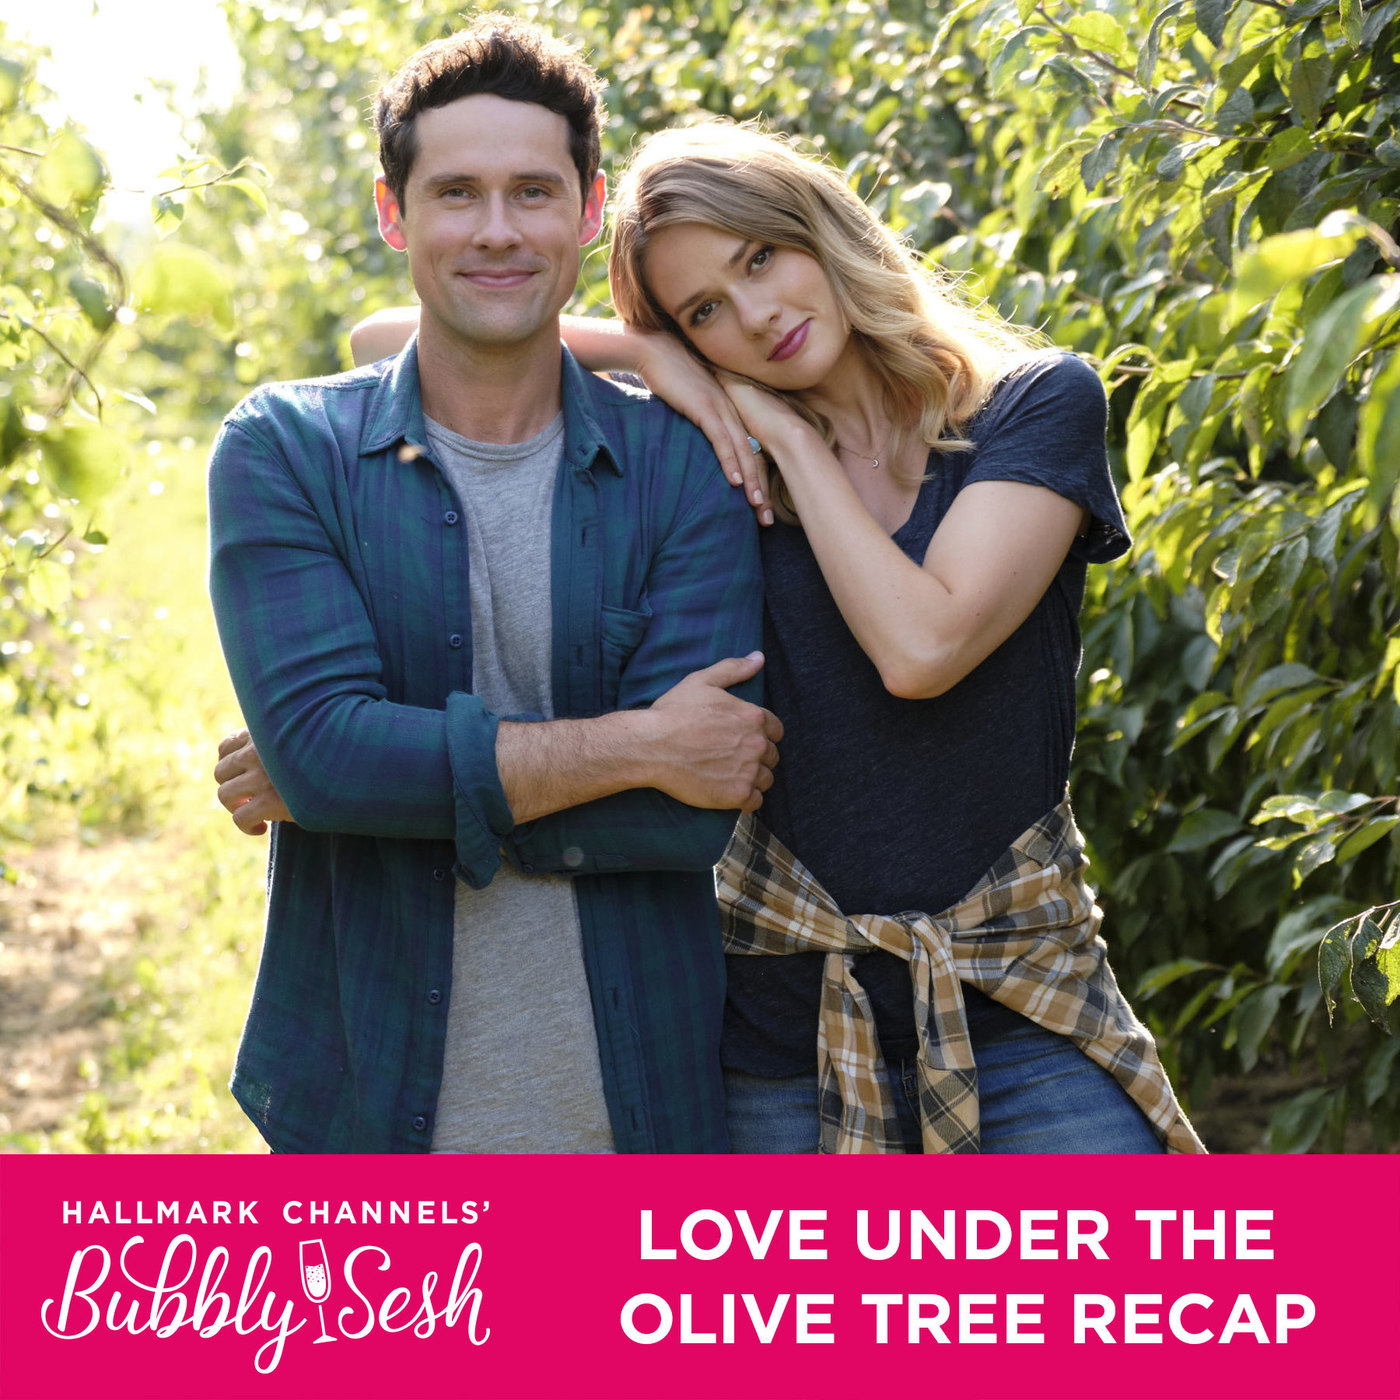 Love Under the Olive Tree Recap